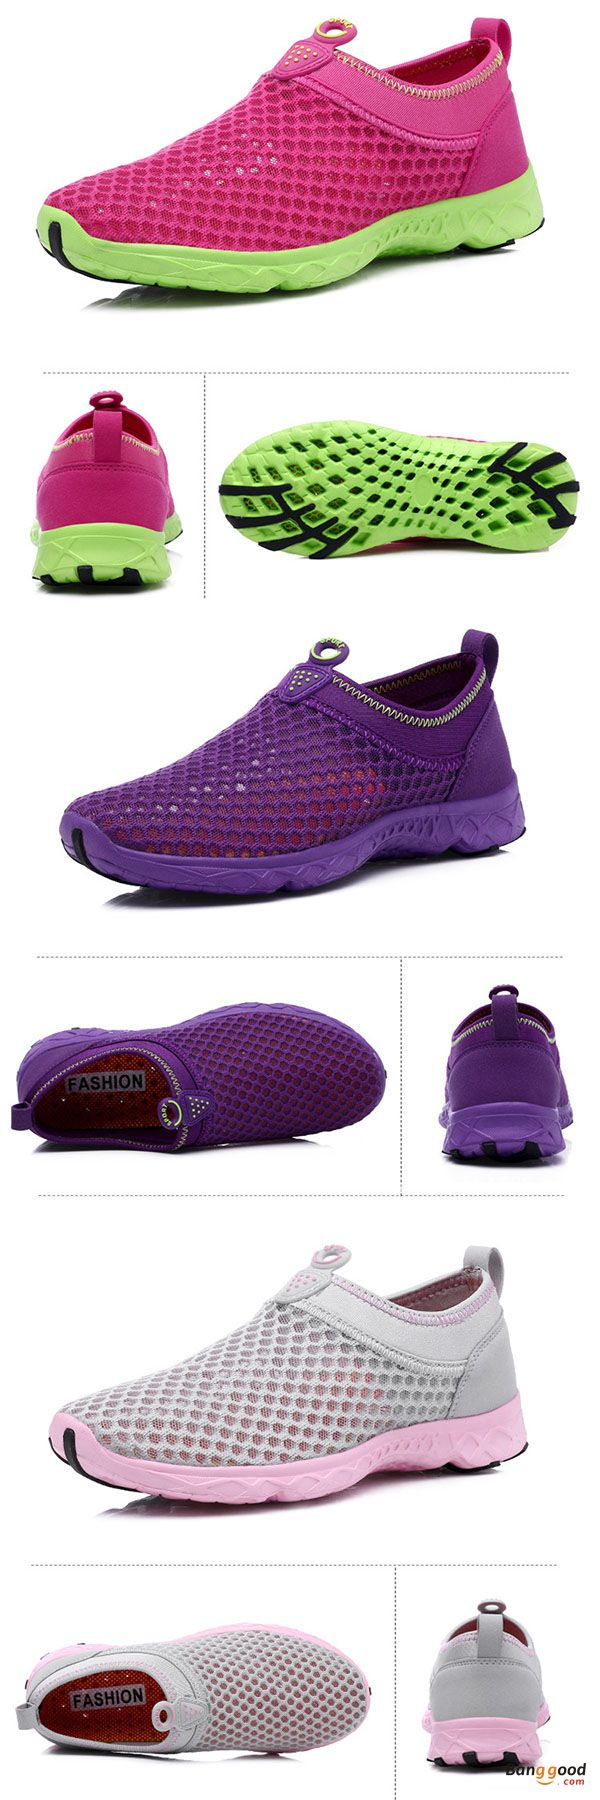 US$24.86 + Free shipping. Size(US): 5~9. Color: Light Pink, Purple, Rose Red. Upper Material: Mesh. Fall in love with casual and sport style! Summer Sandals, Women Flat Sandals, shoes flats, shoes sandals, Casual, Outdoor, Comfortable.